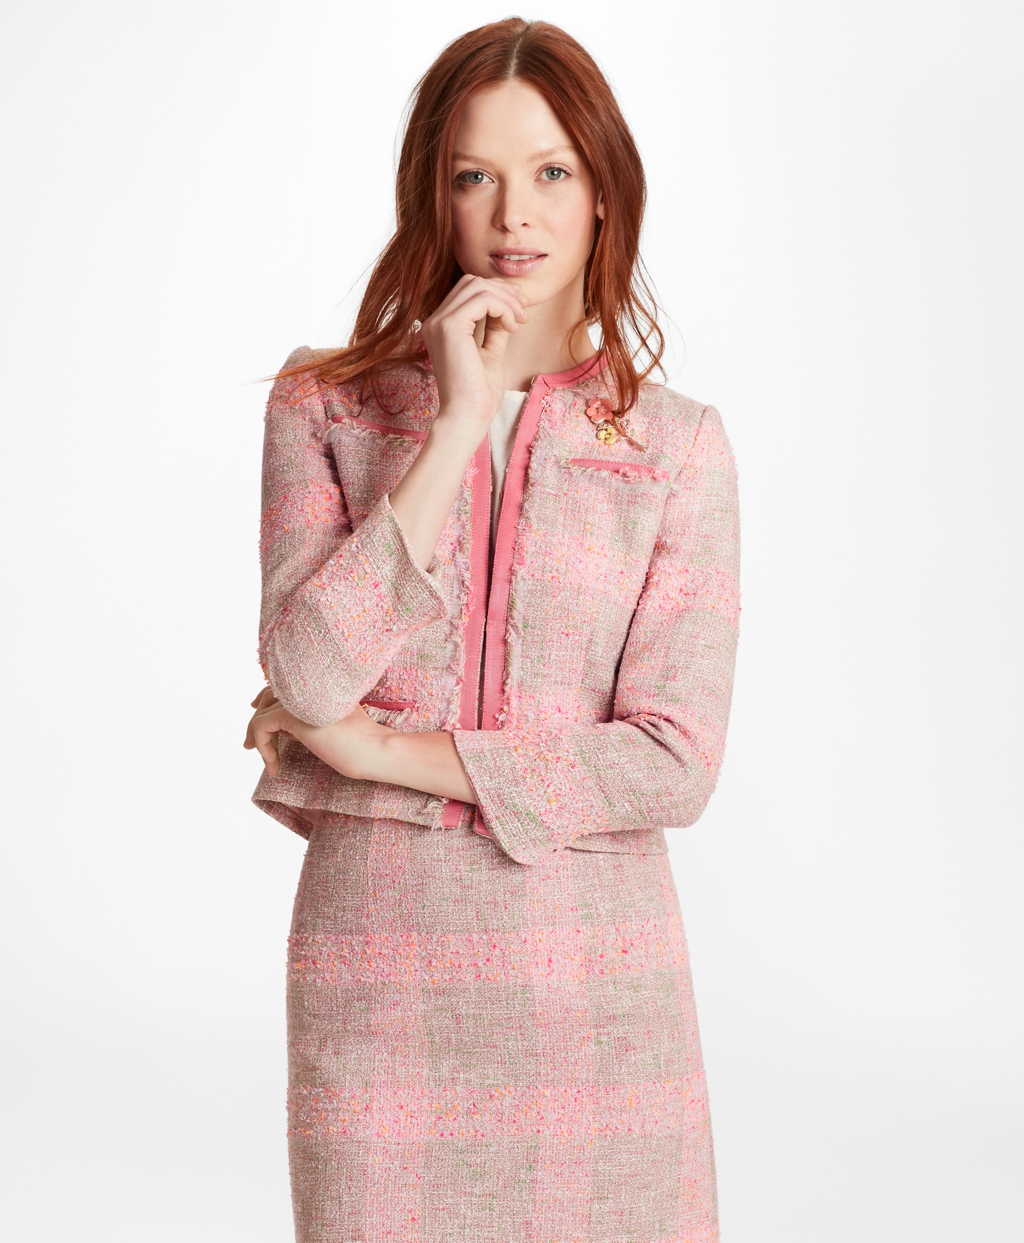 Vintage Coats & Jackets | Retro Coats and Jackets Brooks Brothers Womens Checked Boucle Jacket $249.00 AT vintagedancer.com